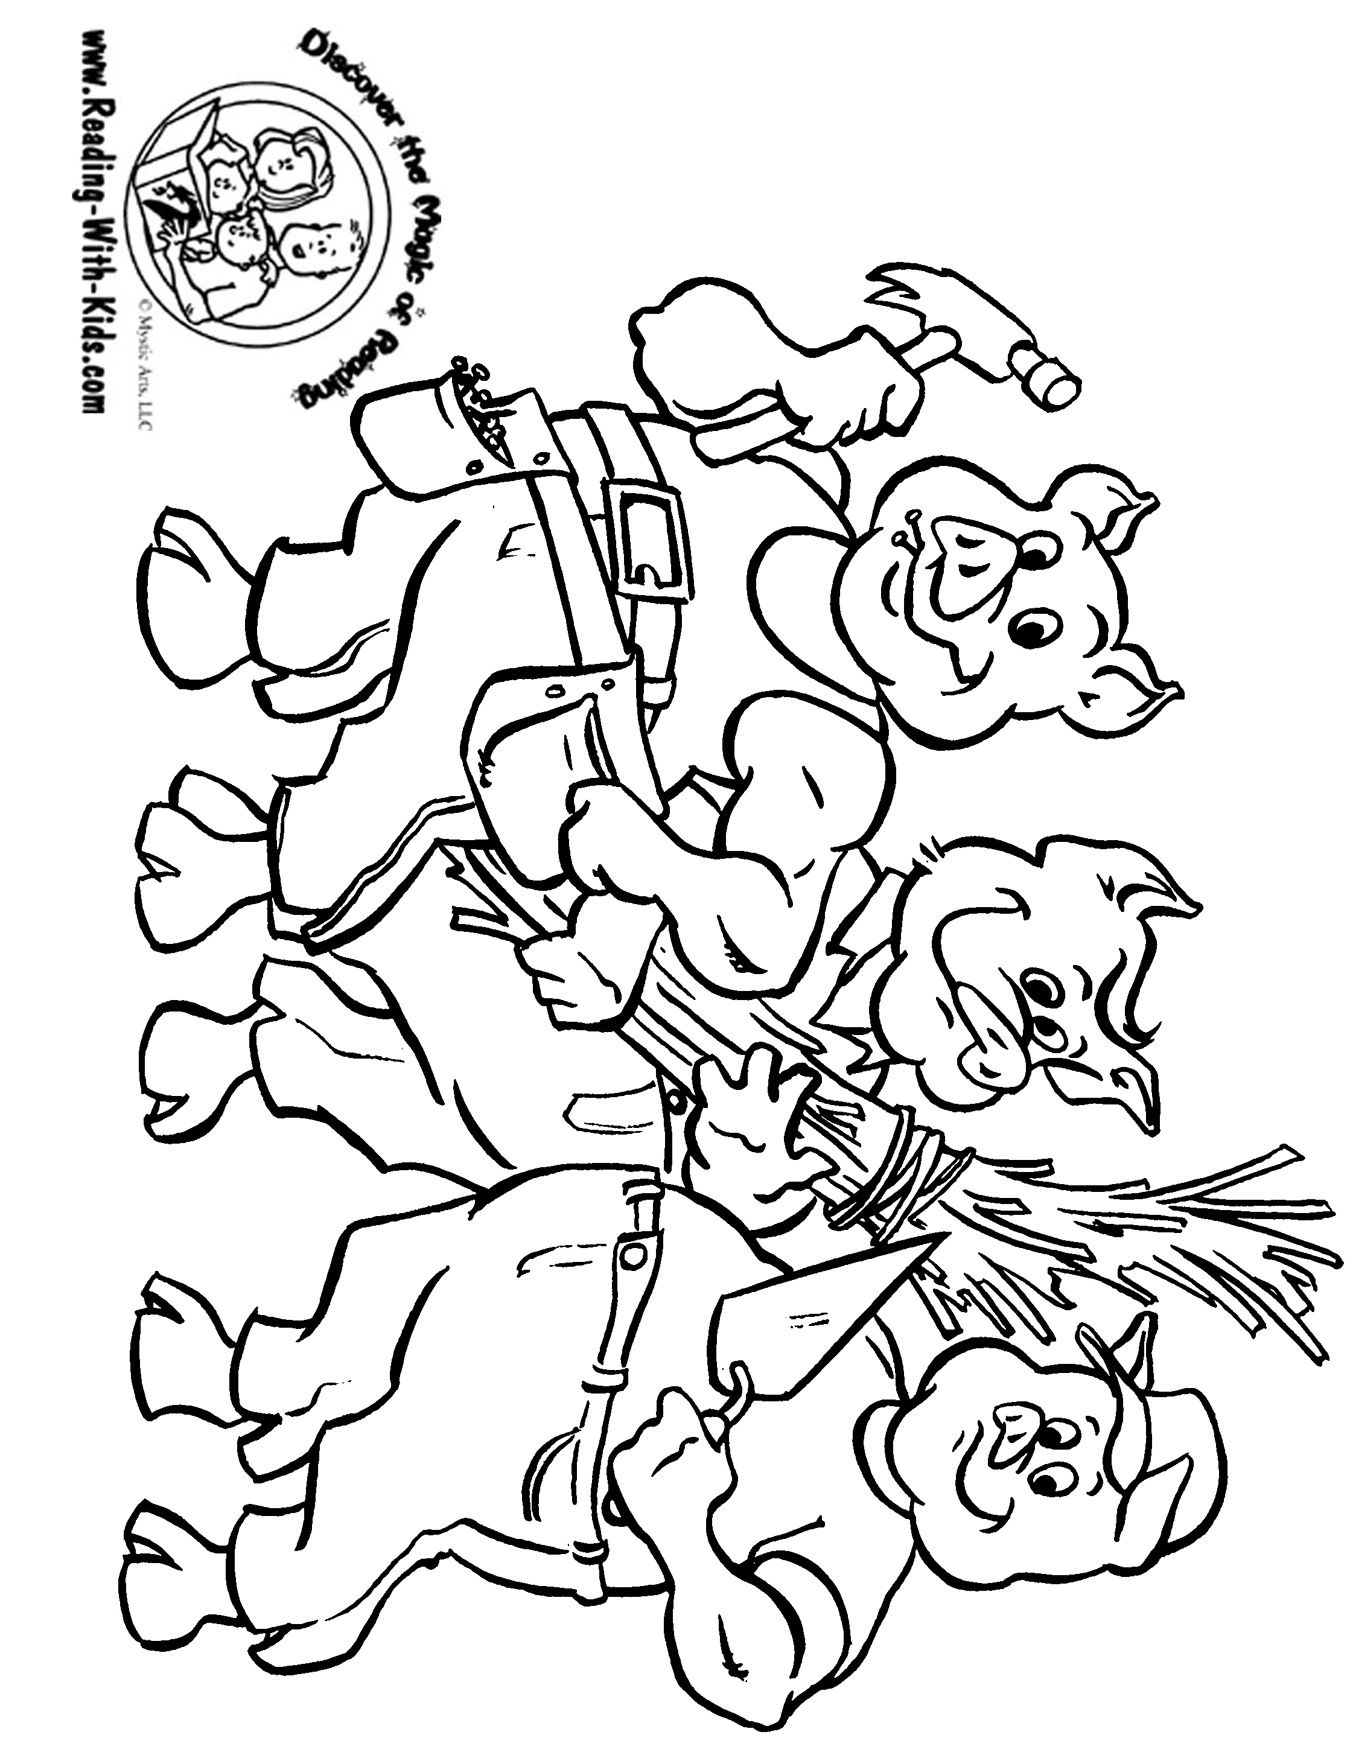 Fairy Tail Coloring Pages Five Little Ducks Coloring Page  Fairy Tale Coloring Pages